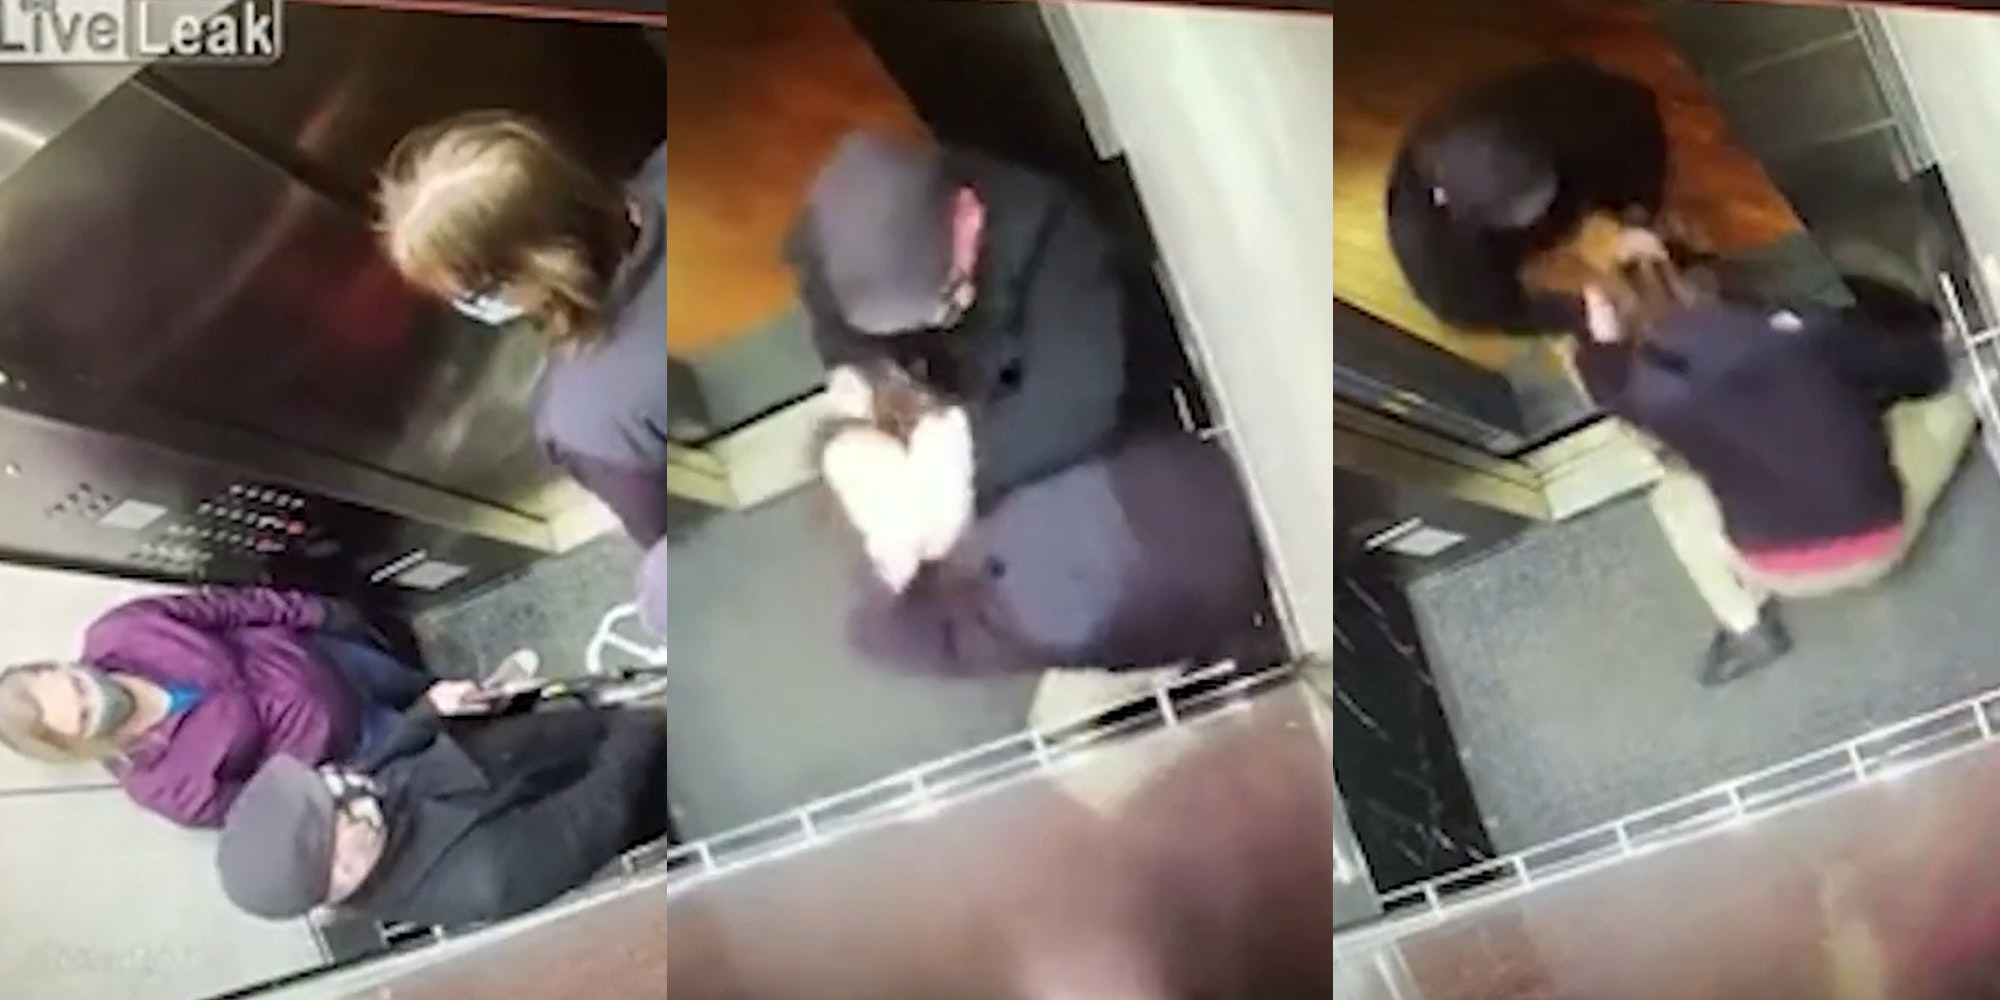 man standing on crowded elevator coughs toward couple, man grabs coughing man, drags him out of elevator by hair